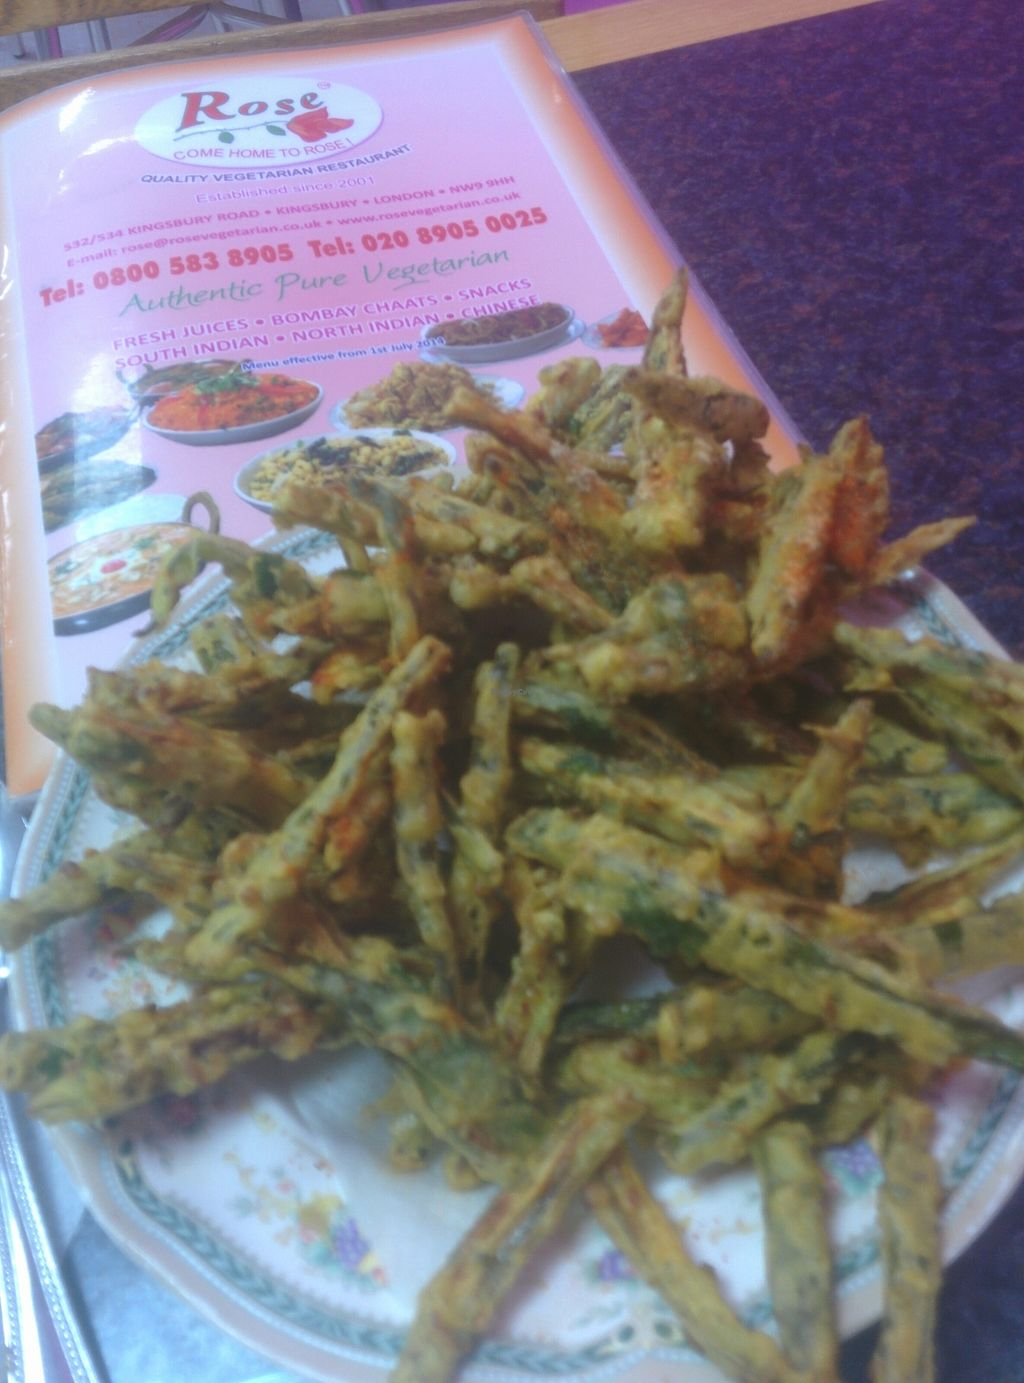 "Photo of Rose  by <a href=""/members/profile/Nw4vegan"">Nw4vegan</a> <br/>vegan crispy bhindi  <br/> February 23, 2016  - <a href='/contact/abuse/image/3782/137460'>Report</a>"